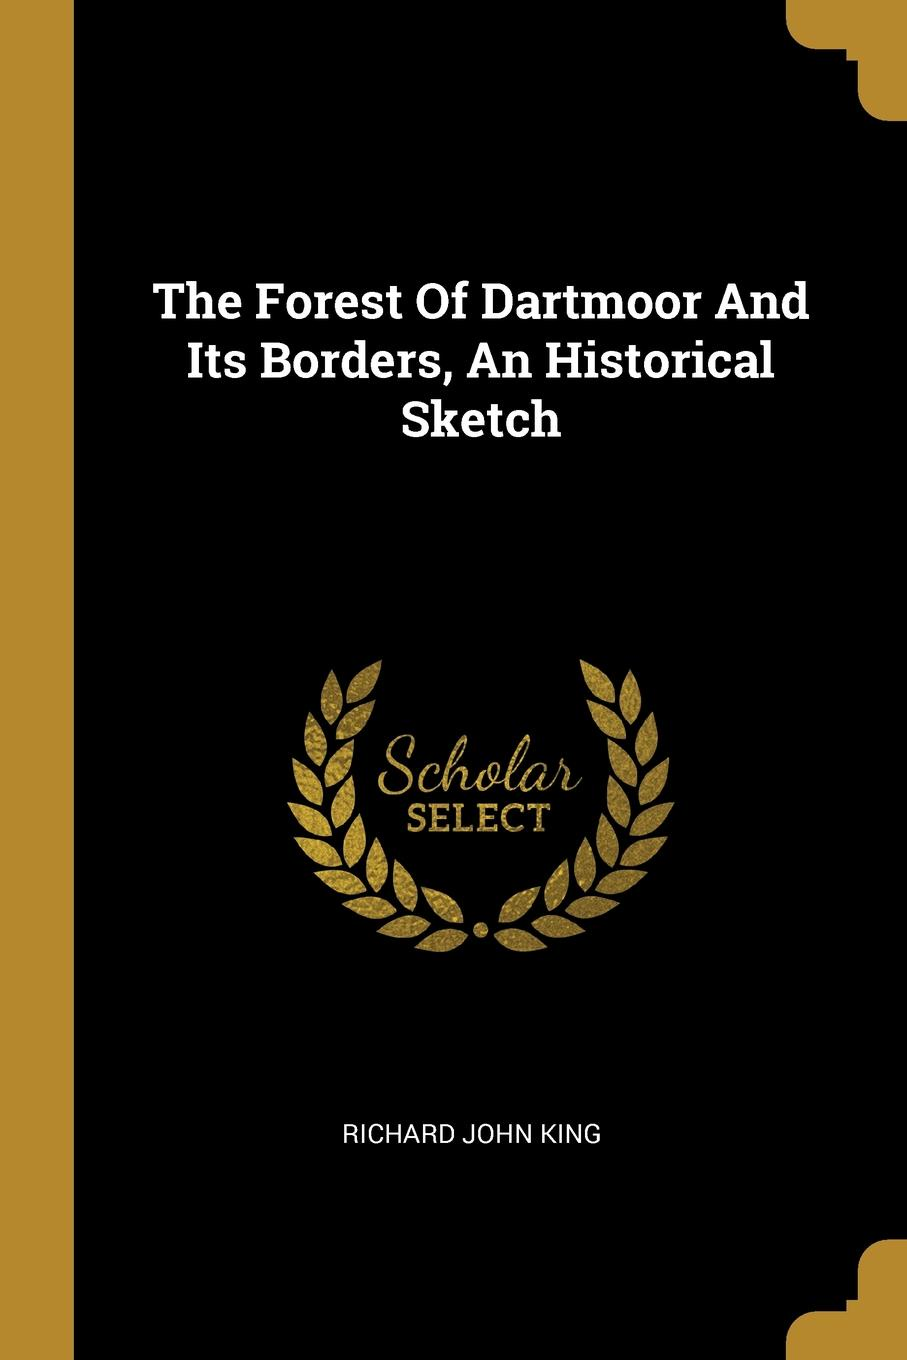 Richard John King. The Forest Of Dartmoor And Its Borders, An Historical Sketch